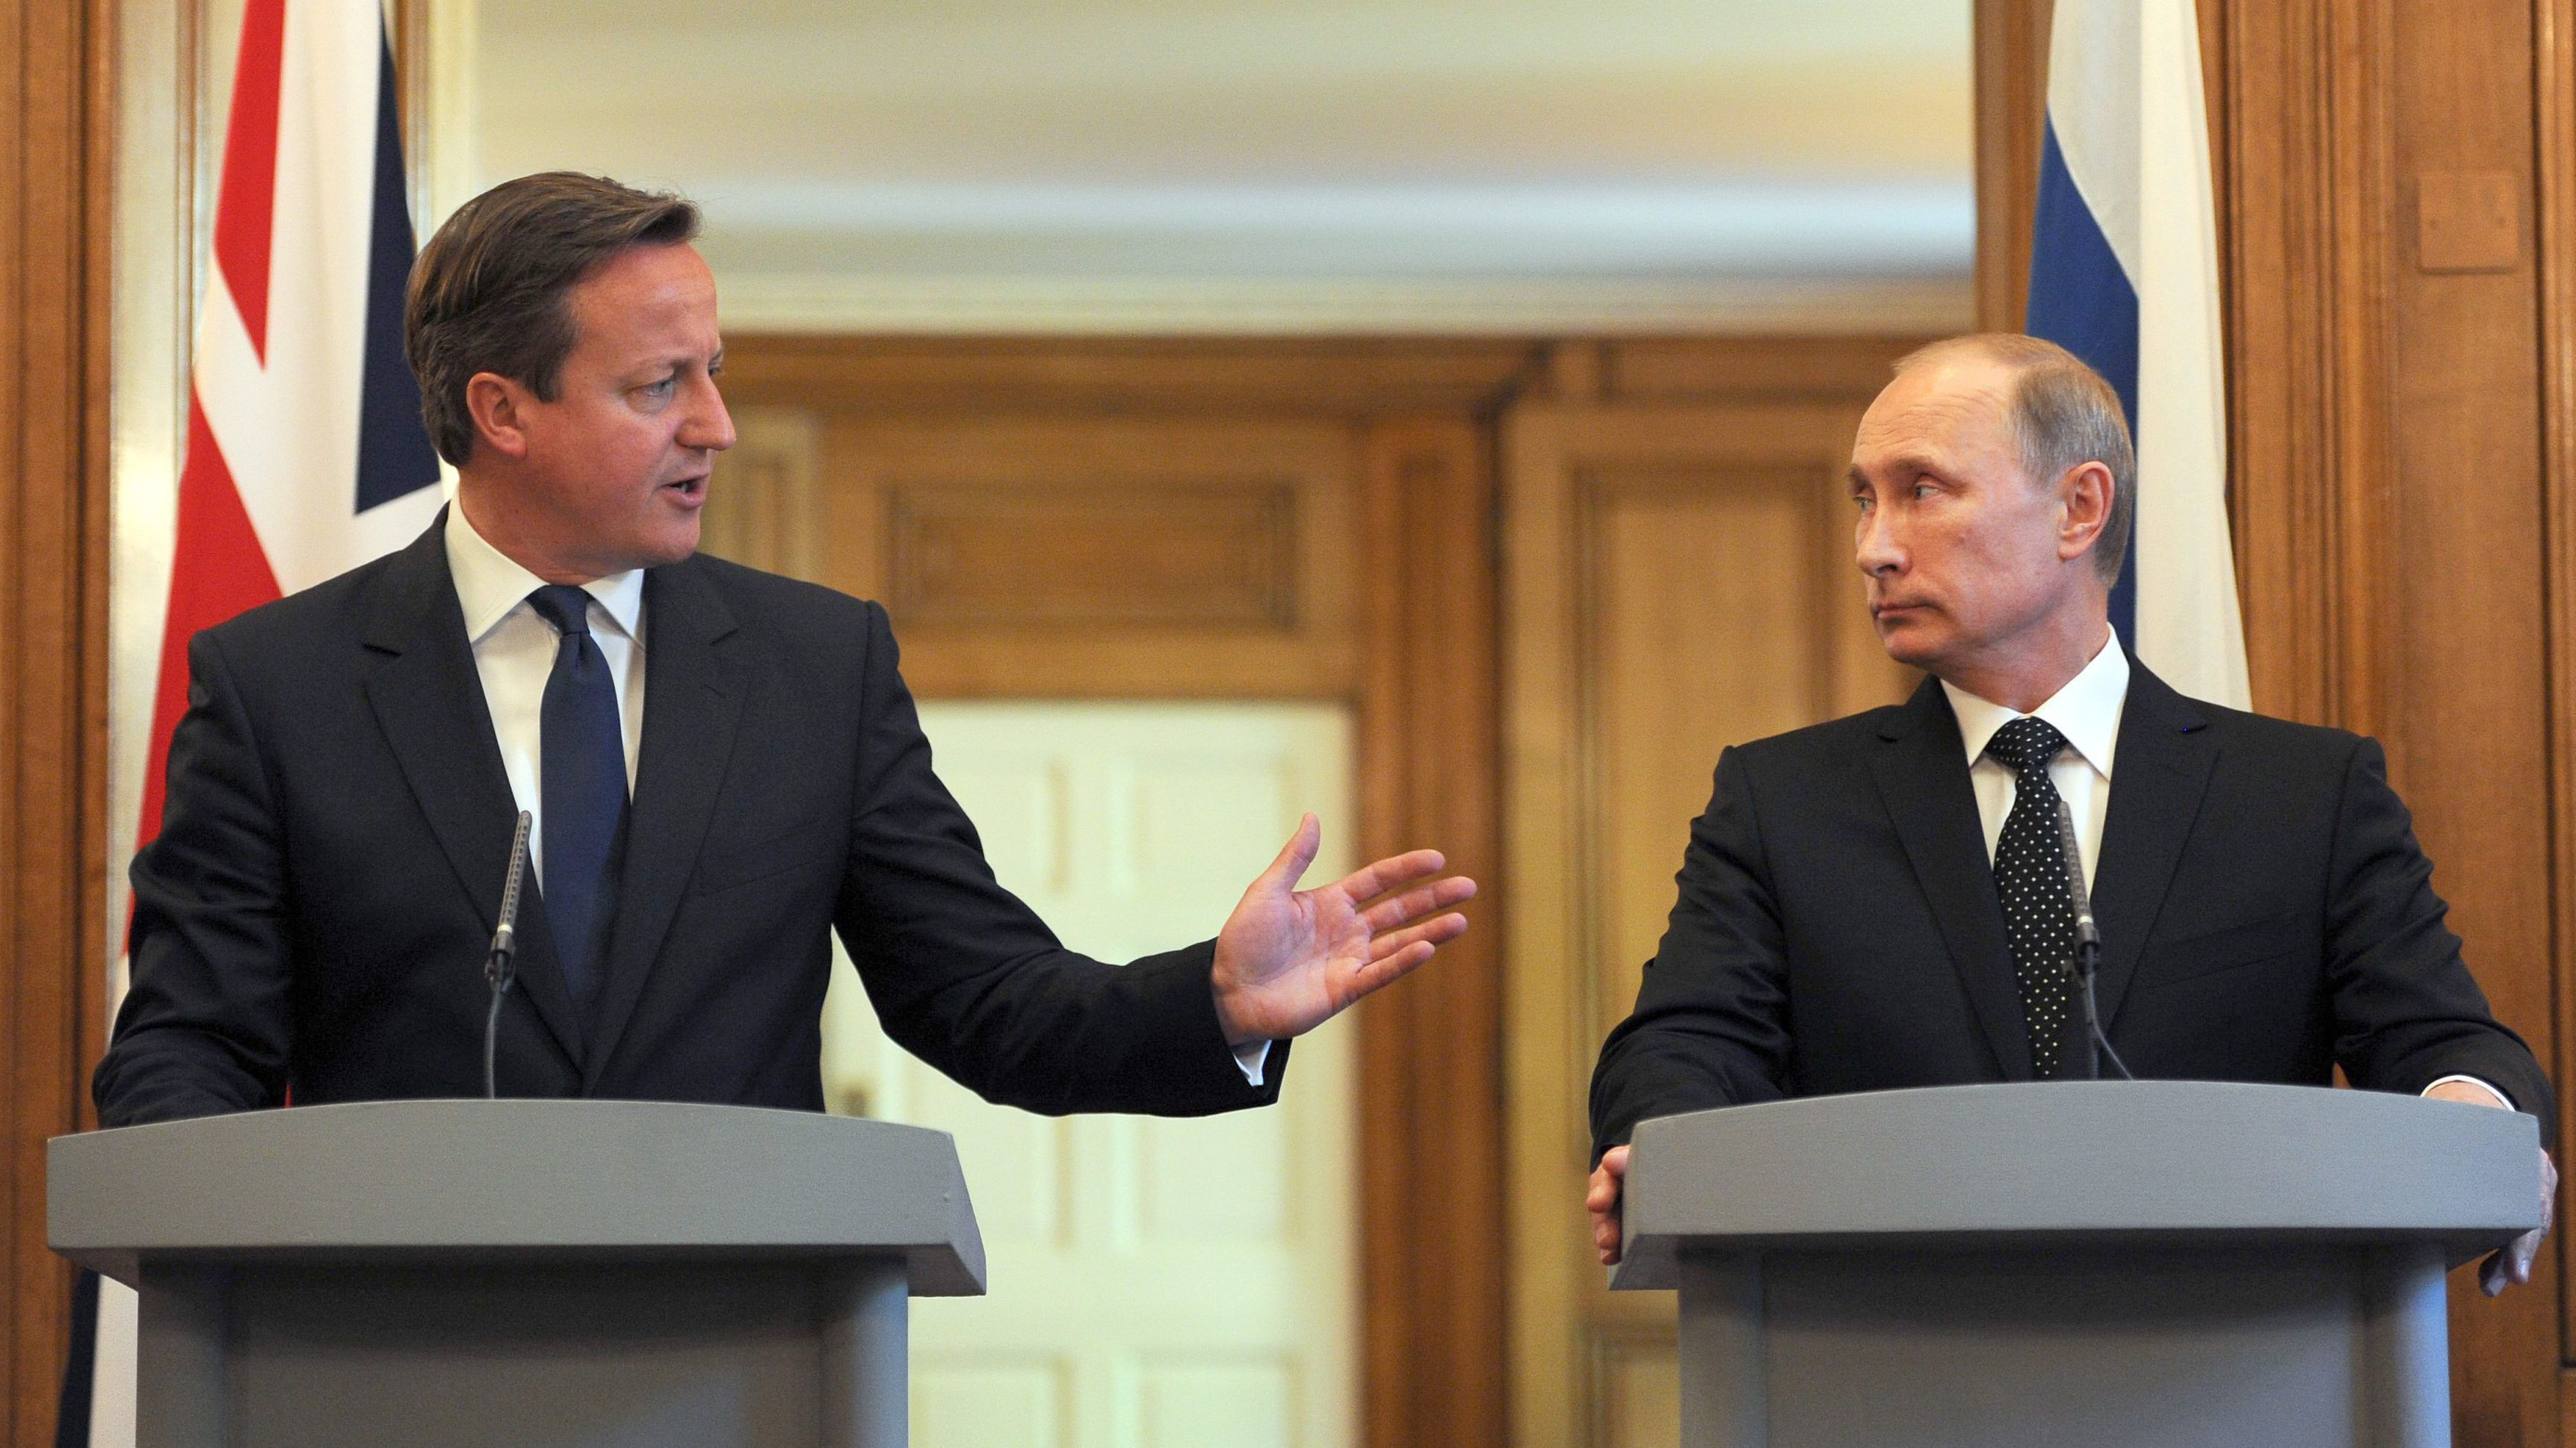 Britain's Prime Minister David Cameron and Russia's President Vladimir Putin hold a joint news conference in 10 Downing Street, central London